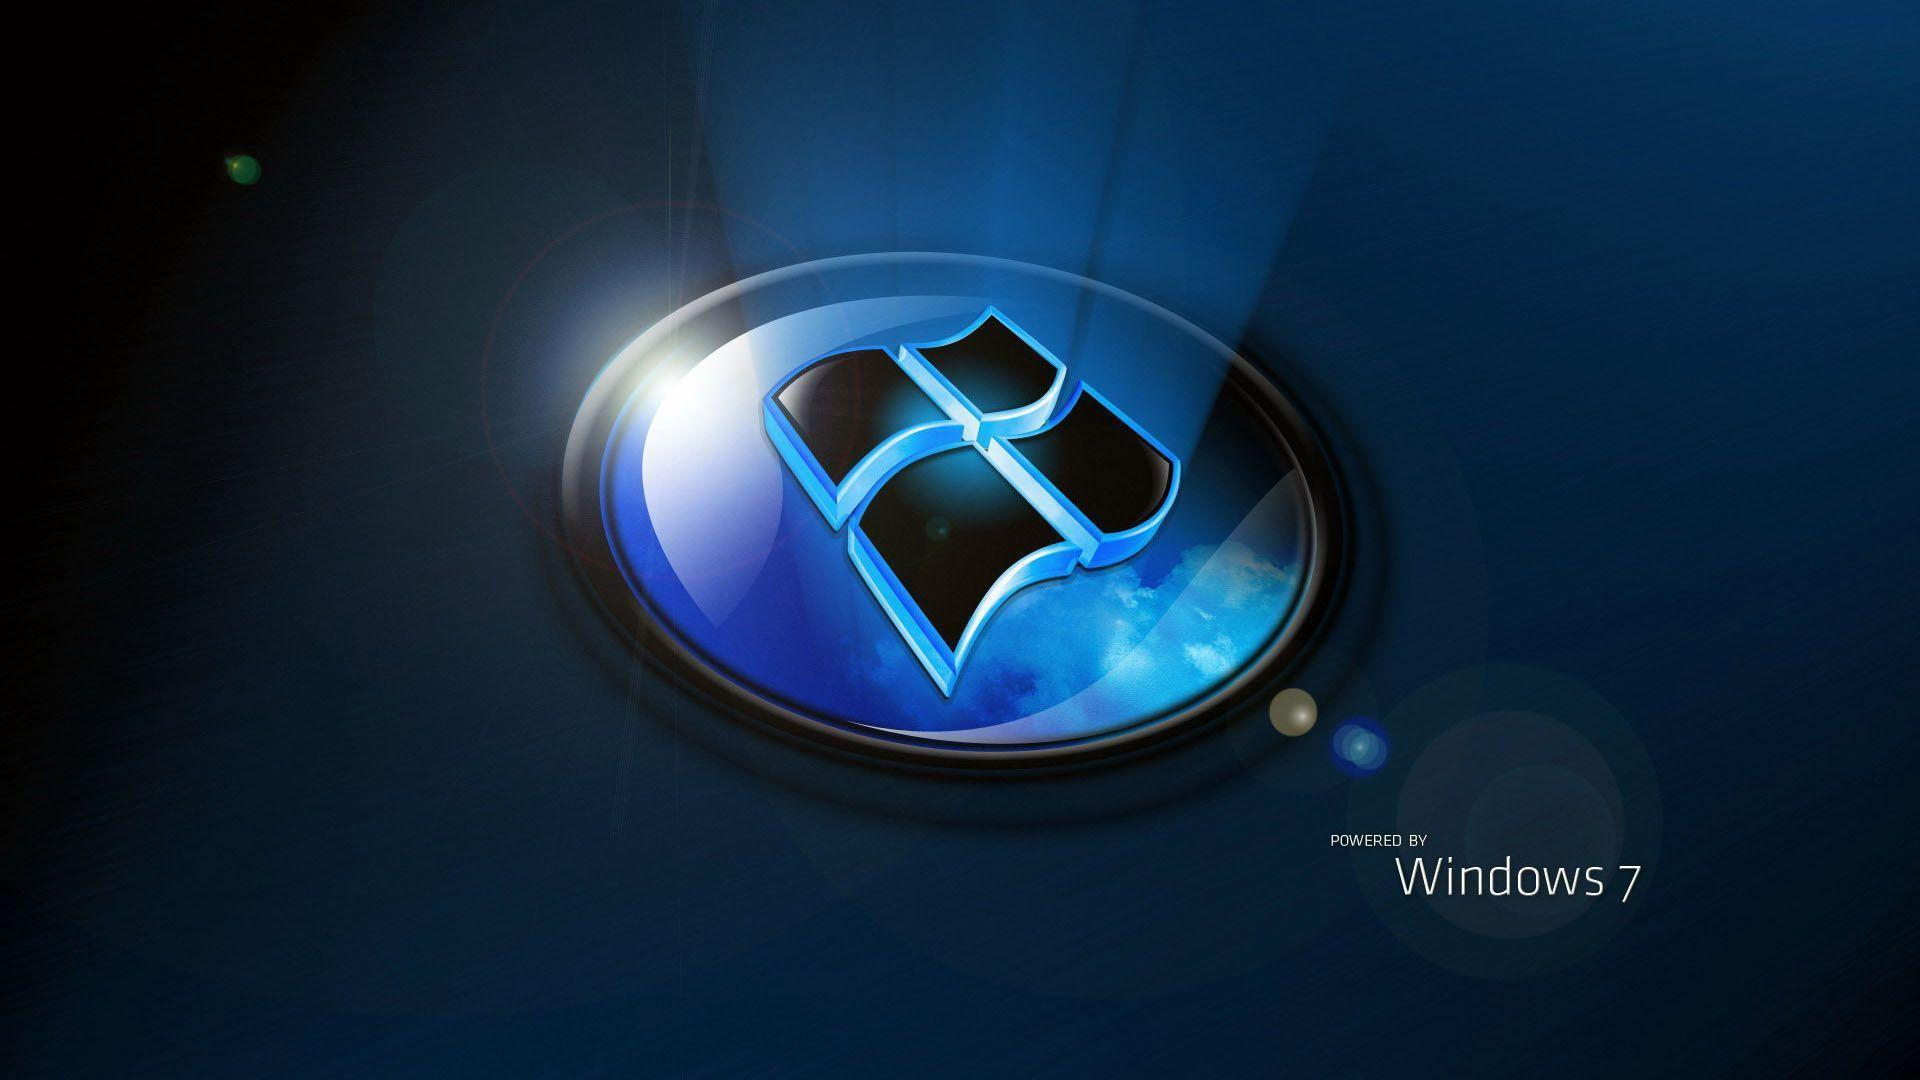 Windows 7 home premium 3D latest logo wallpapers free